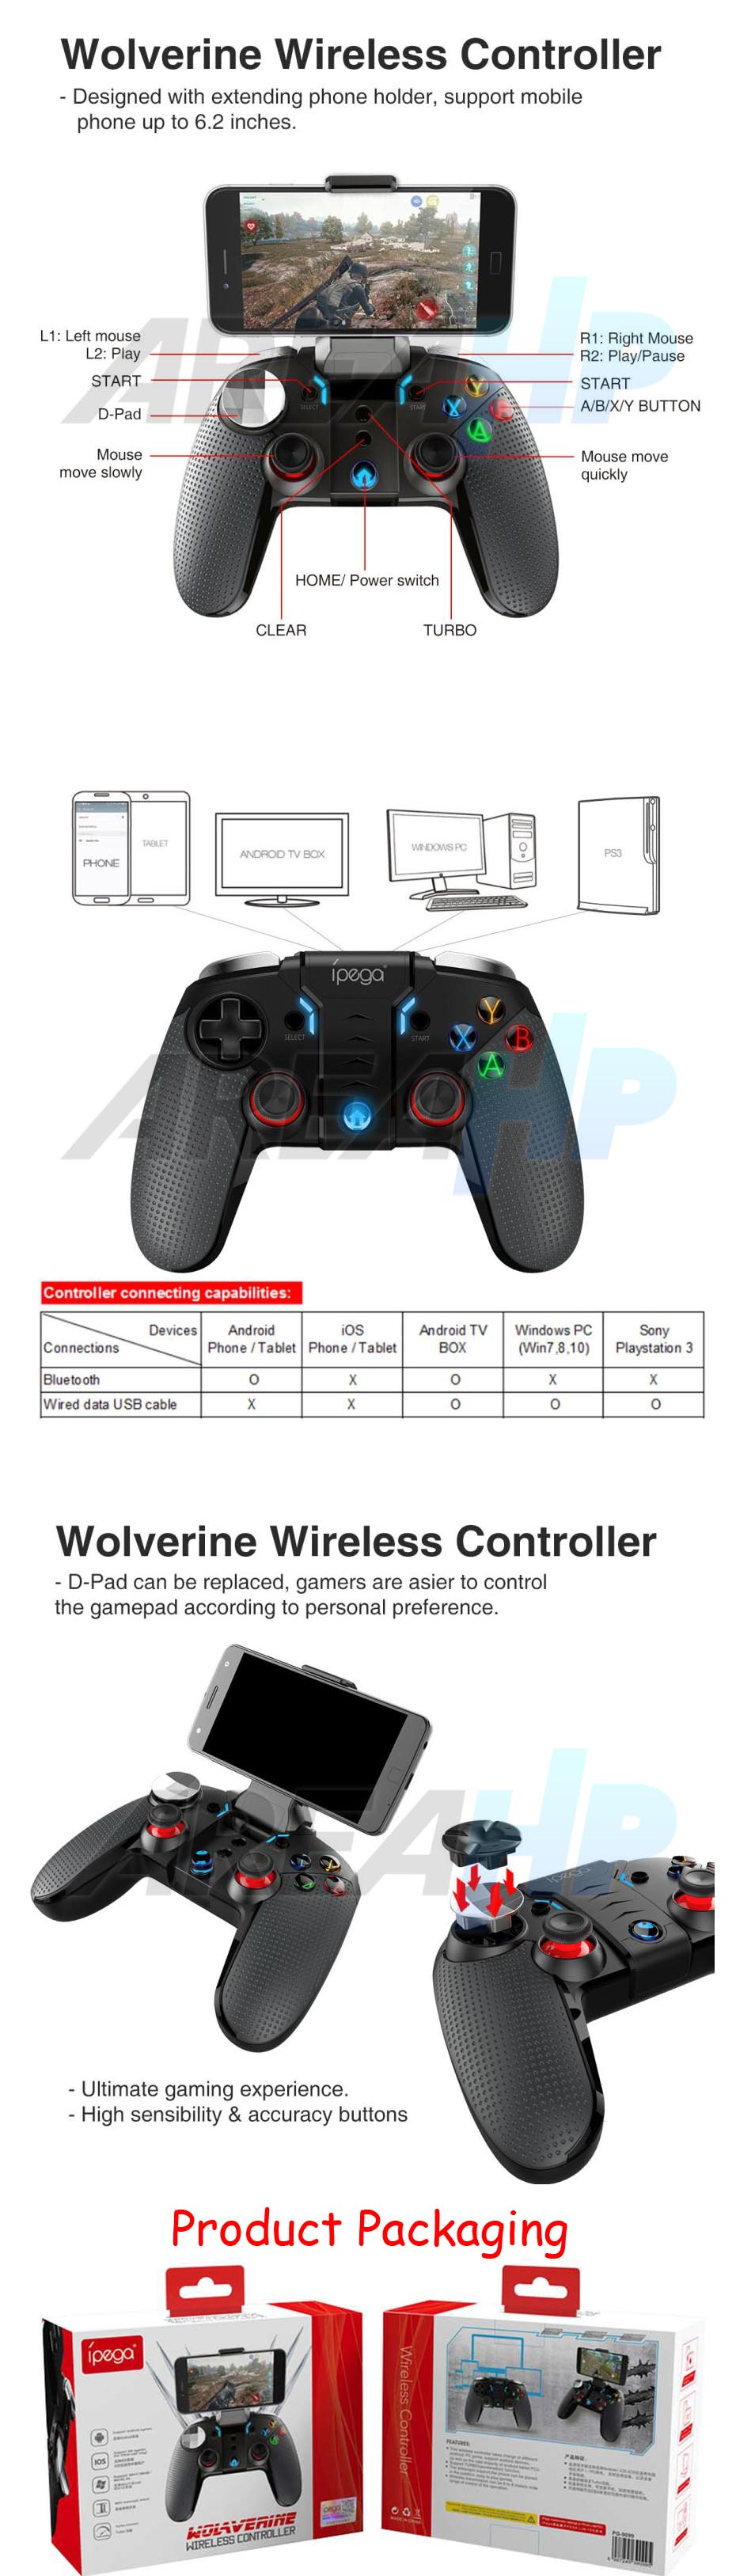 Ipega Gamepad PG-9099 Wolverine with Backlight Bluetooth LED Light Vibrate Overview